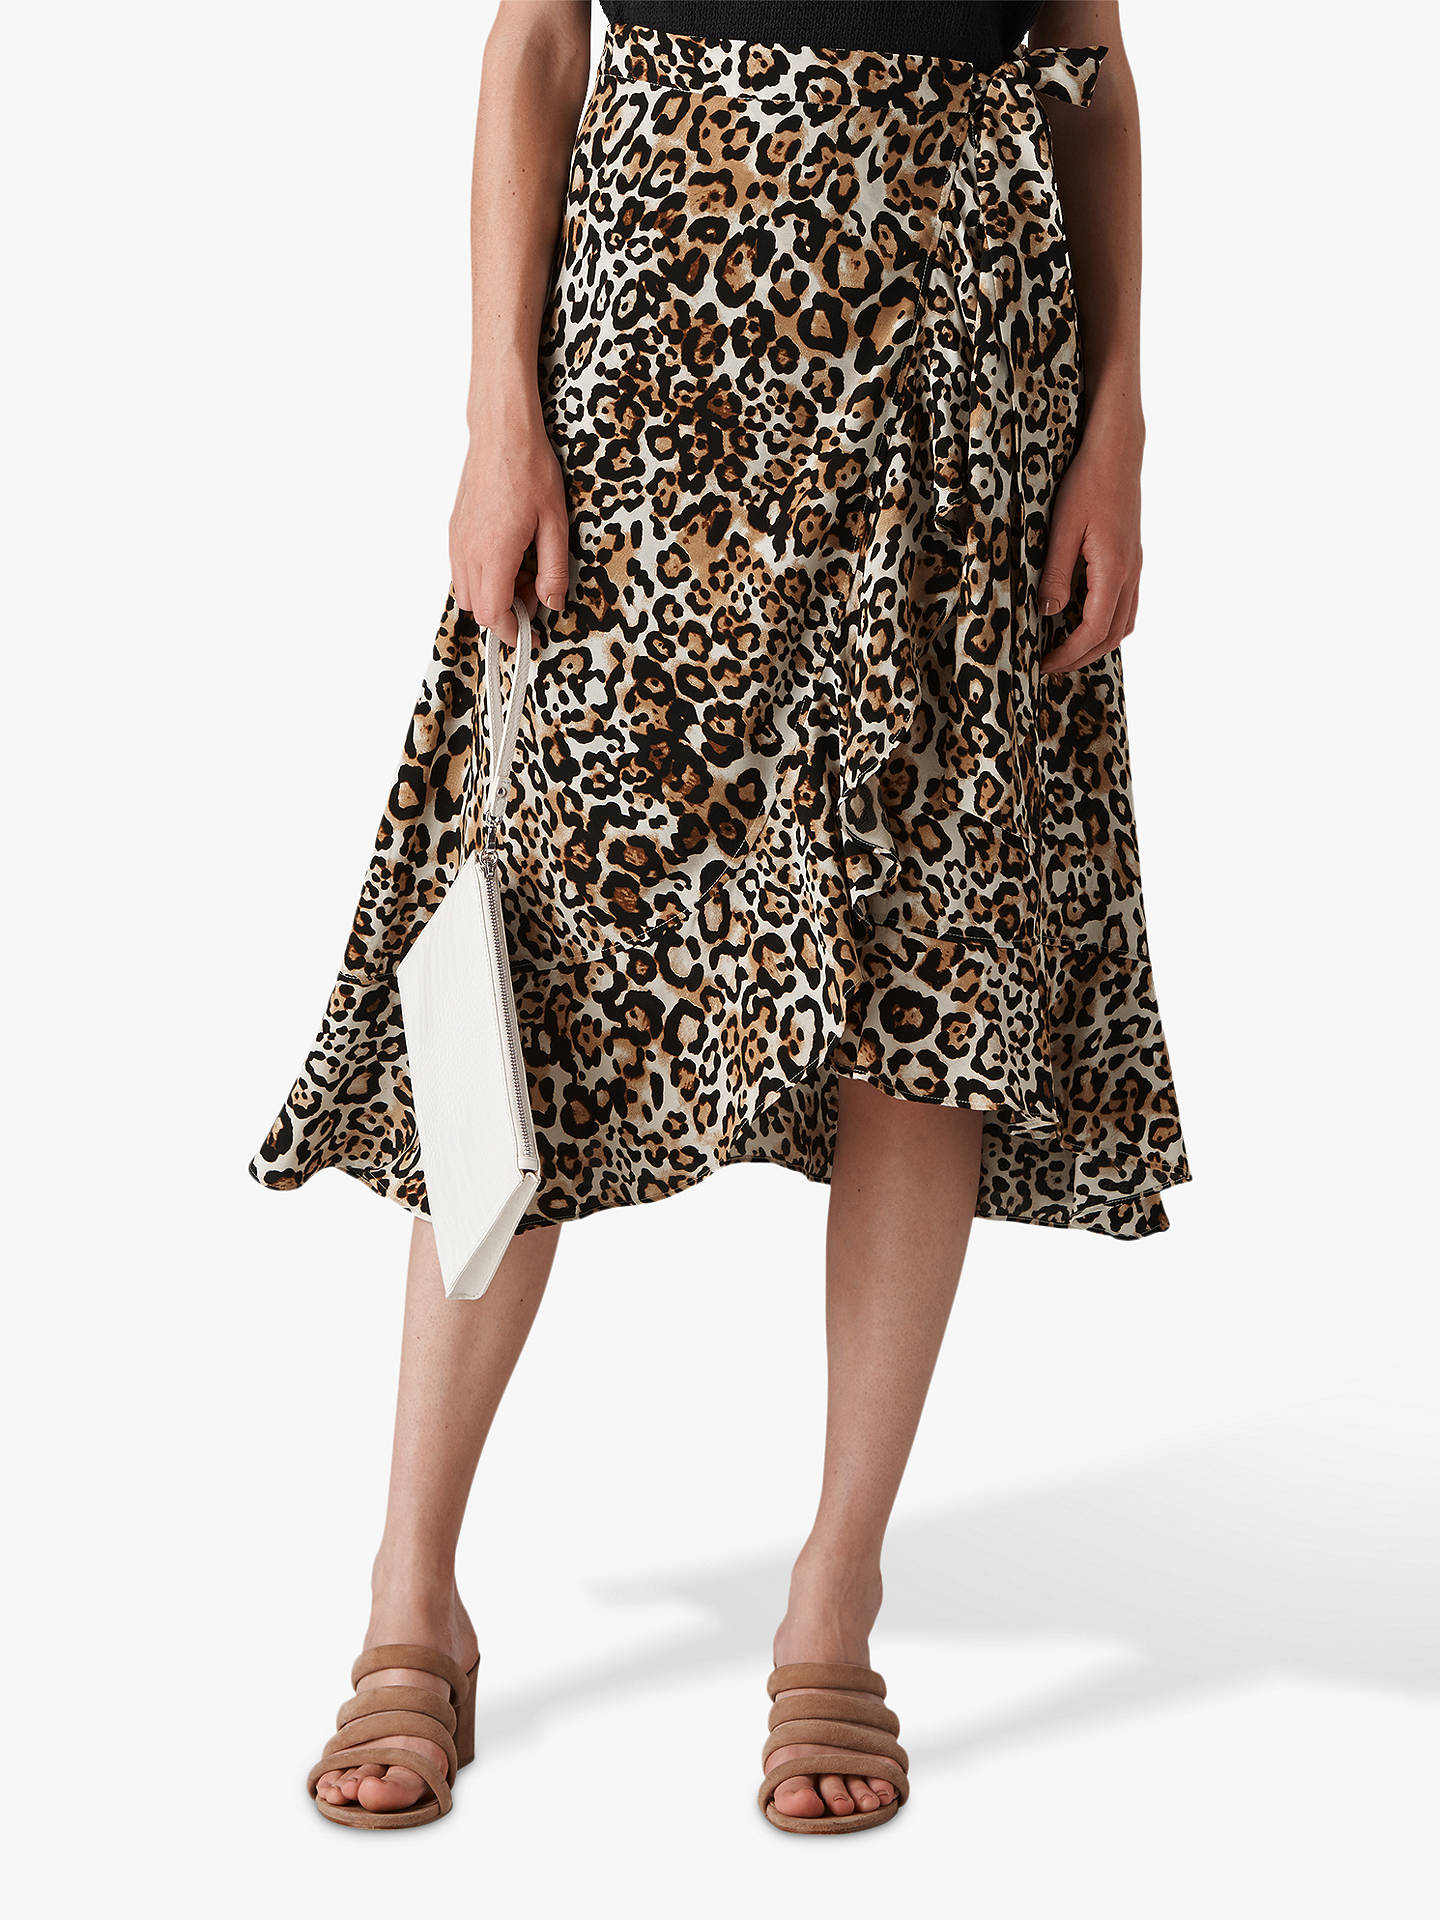 4a9e6752fec5 Buy Whistles Animal Print Wrap Skirt, Multi, 12 Online at johnlewis.com ...